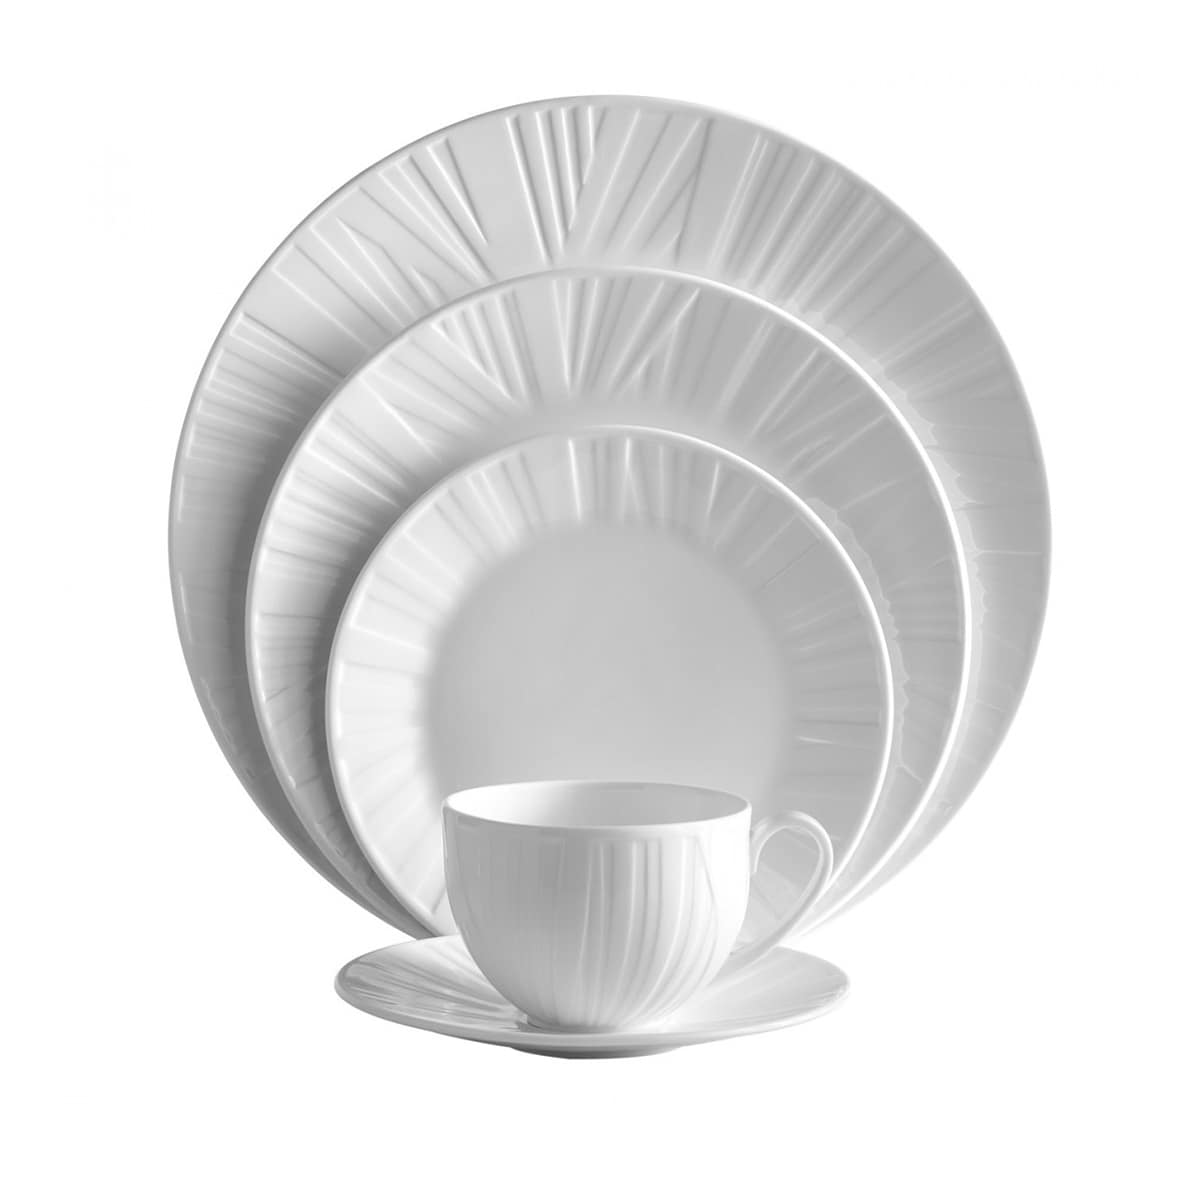 6 Dinnerware Sets That Will Outlast Your Design Whims: gallery image 5